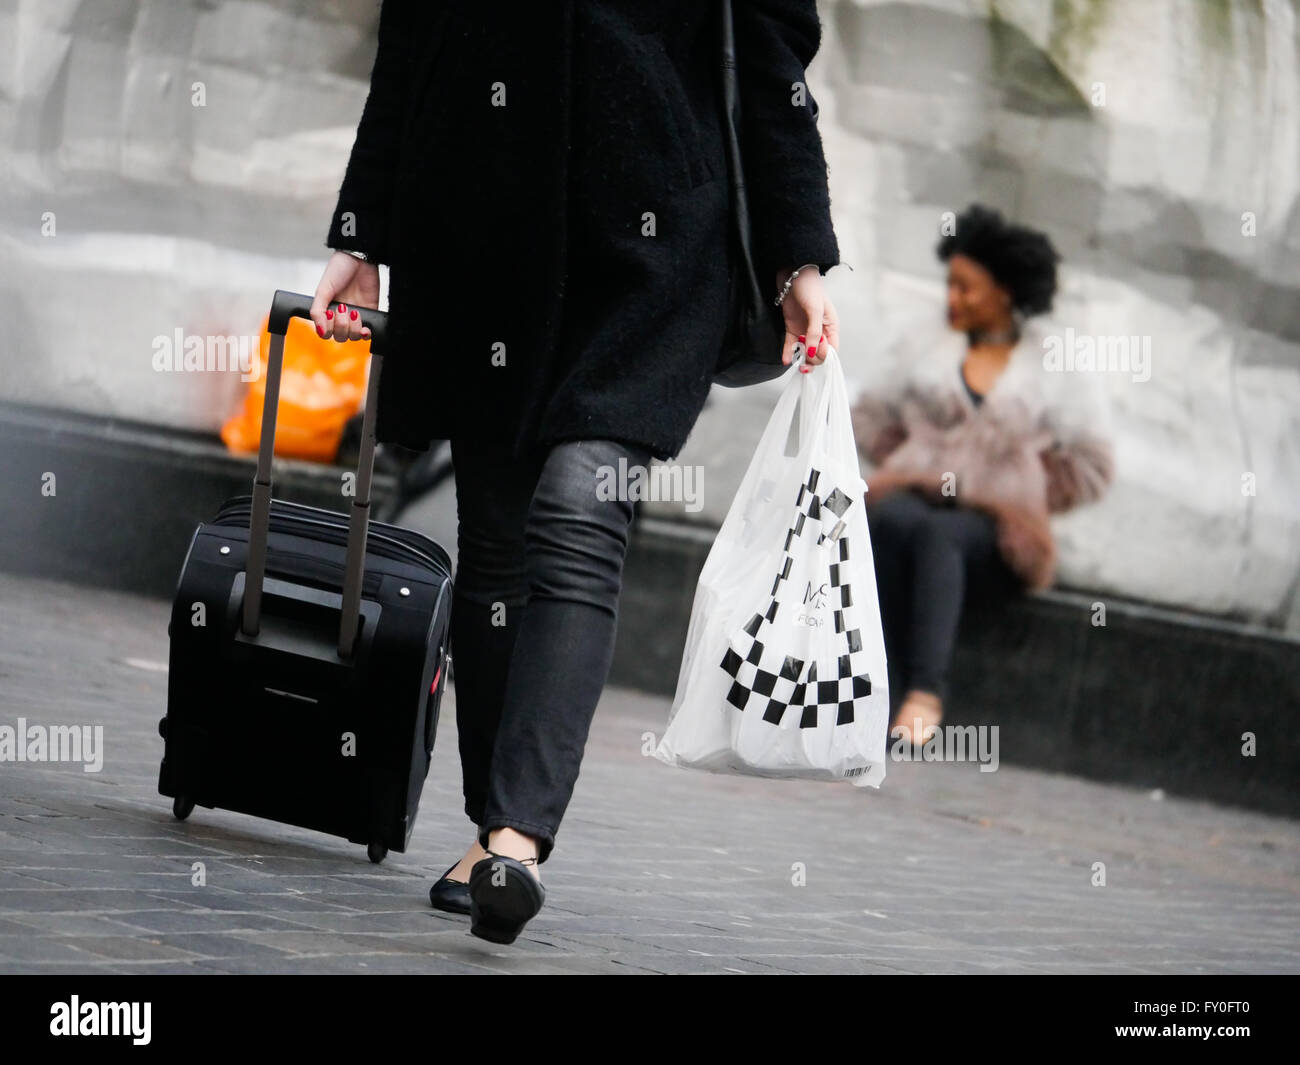 Person with luggage - Stock Image